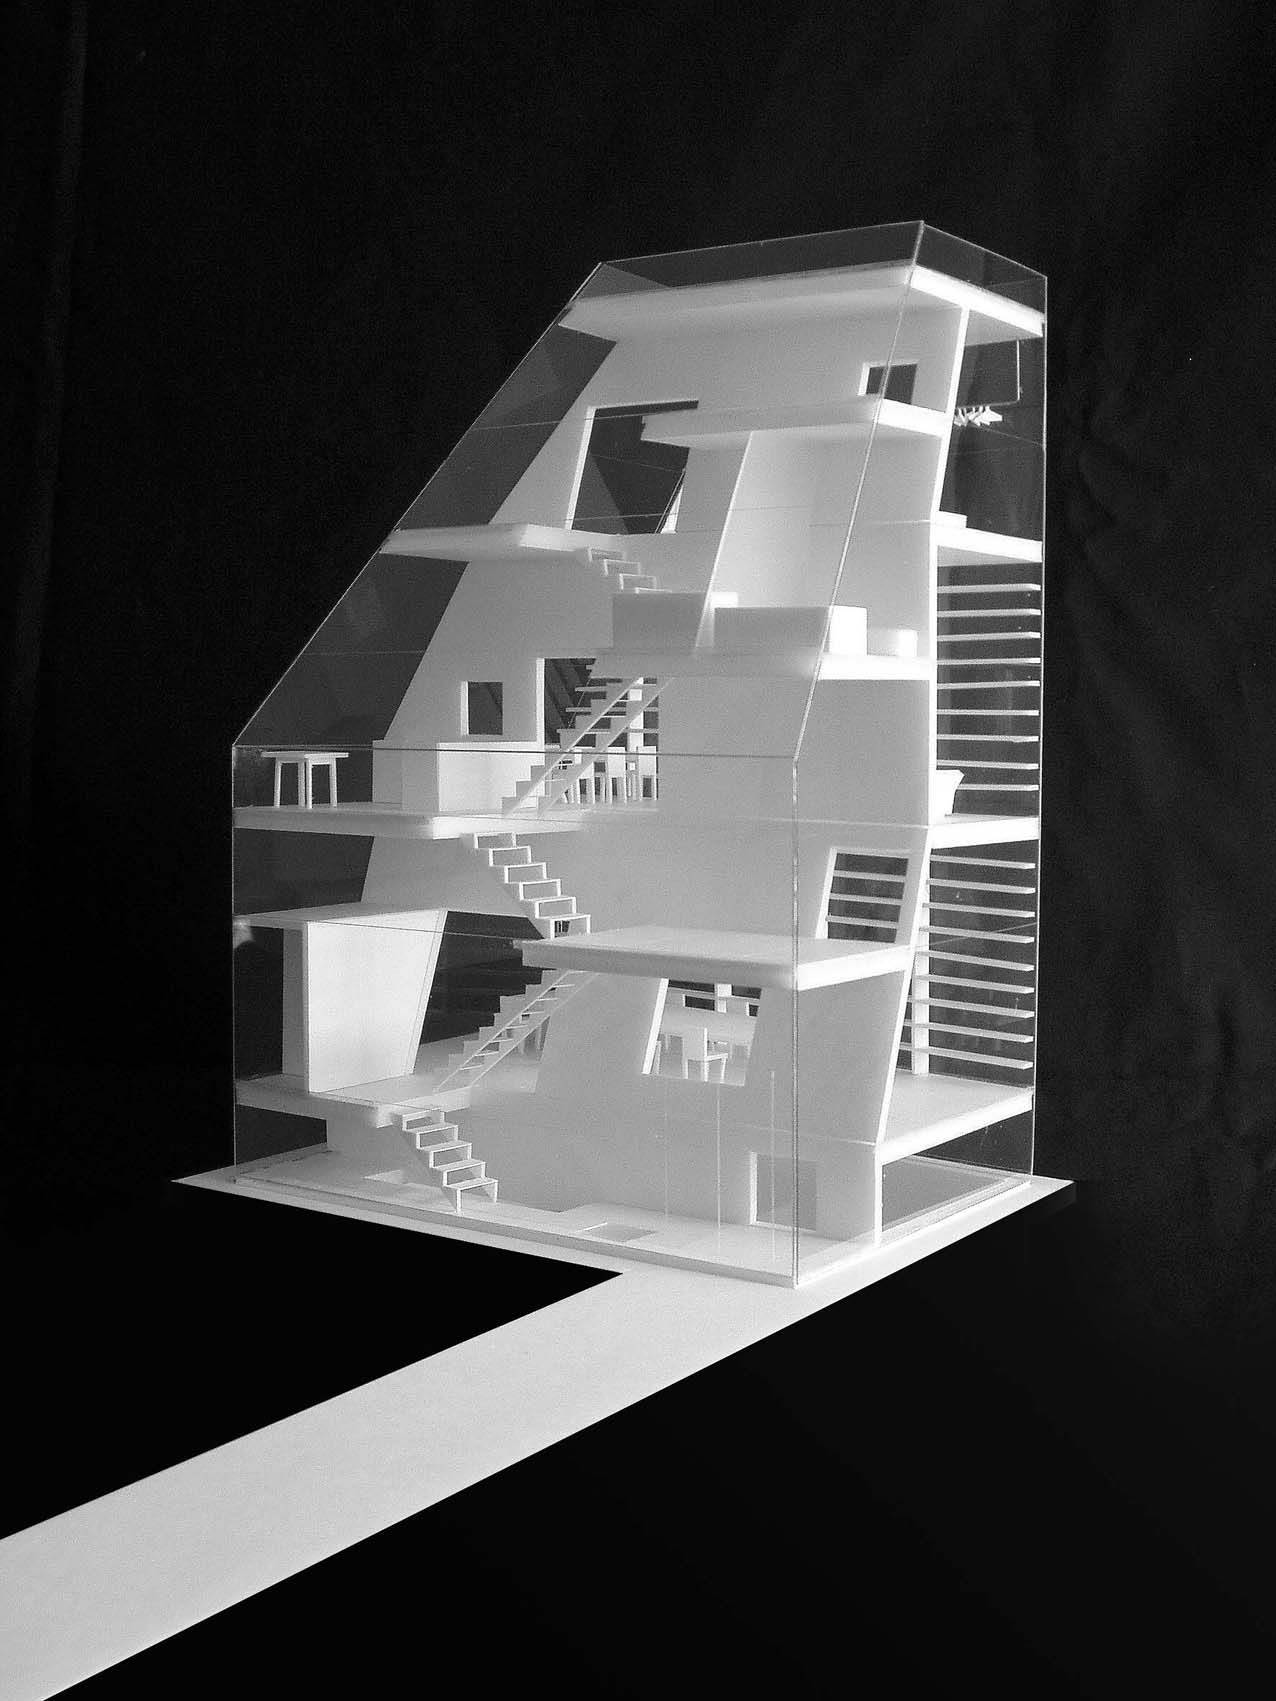 House atelier bow wow 3dmodels sketches pinterest for Architecture house models